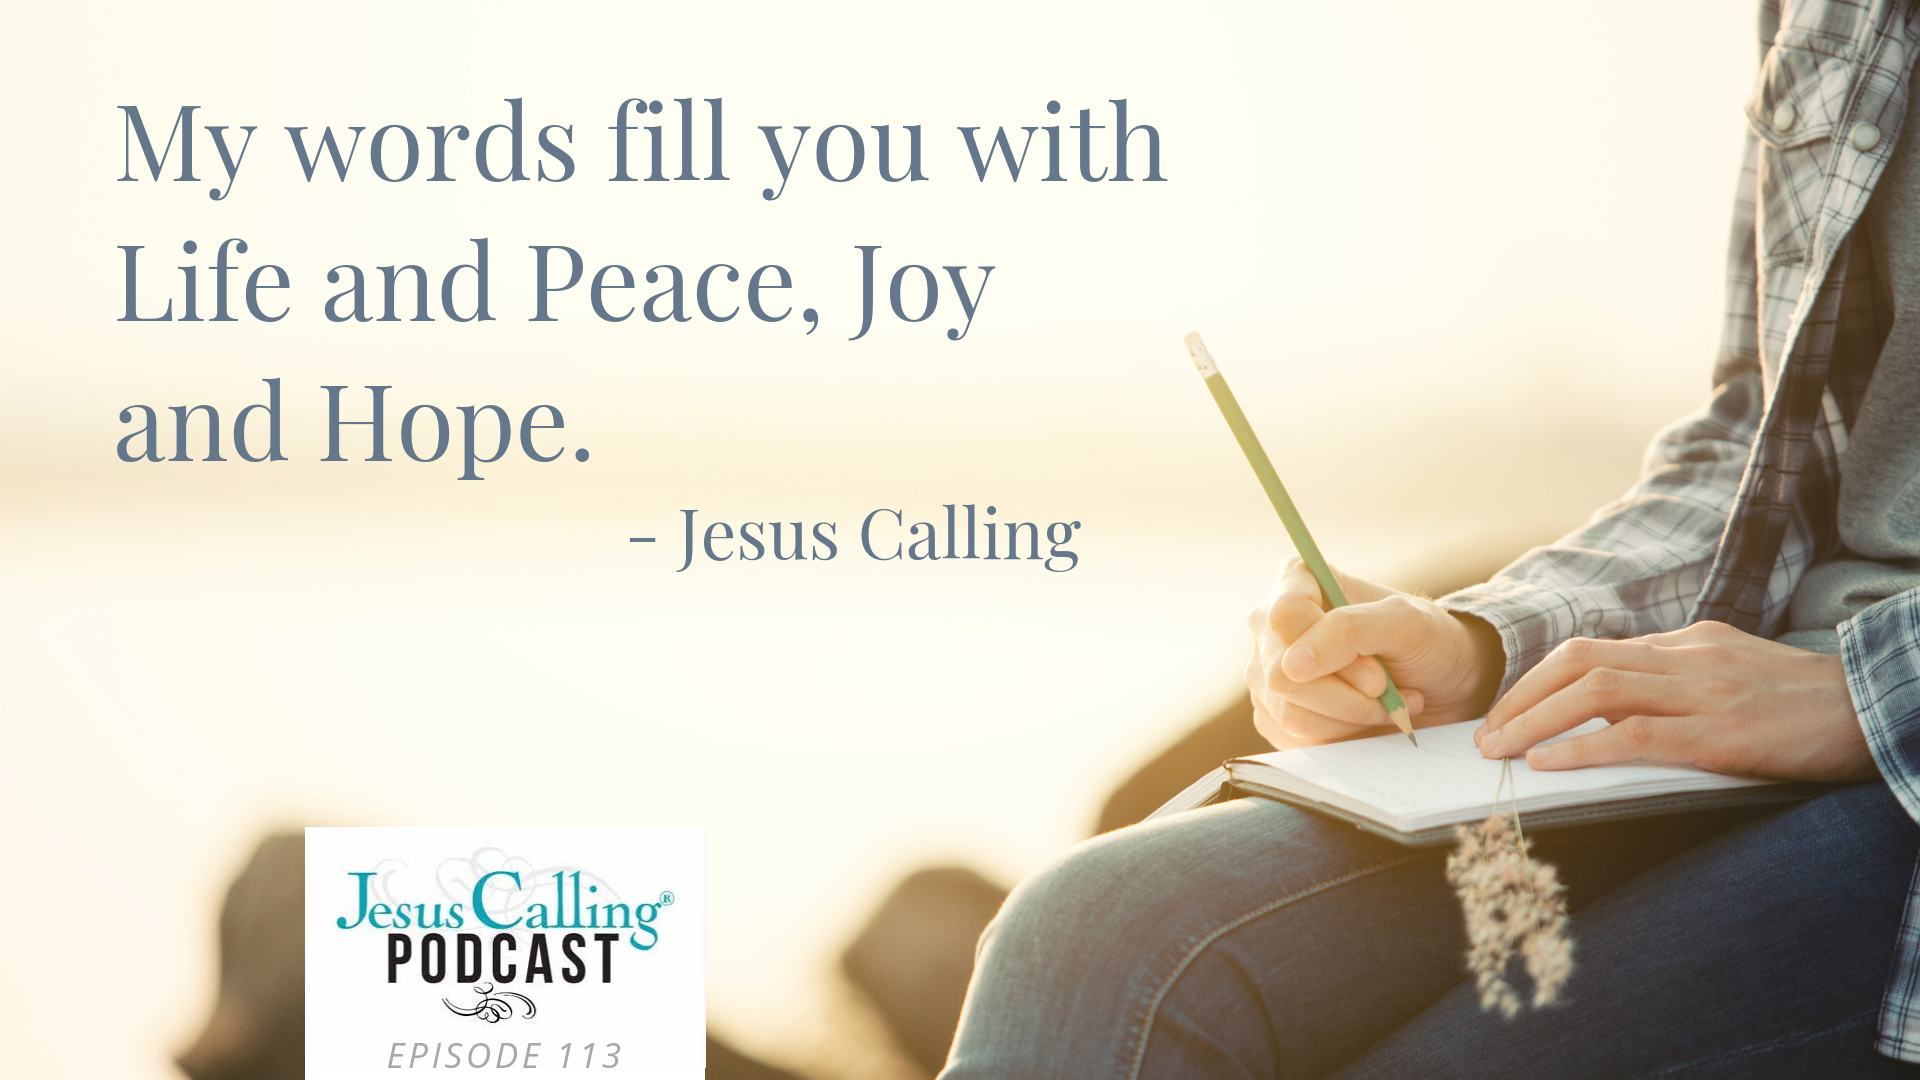 Jesus Calling podcast episode #113 featuring Country Music's RAELYNN and Christian fiction author, Kristy Cambron